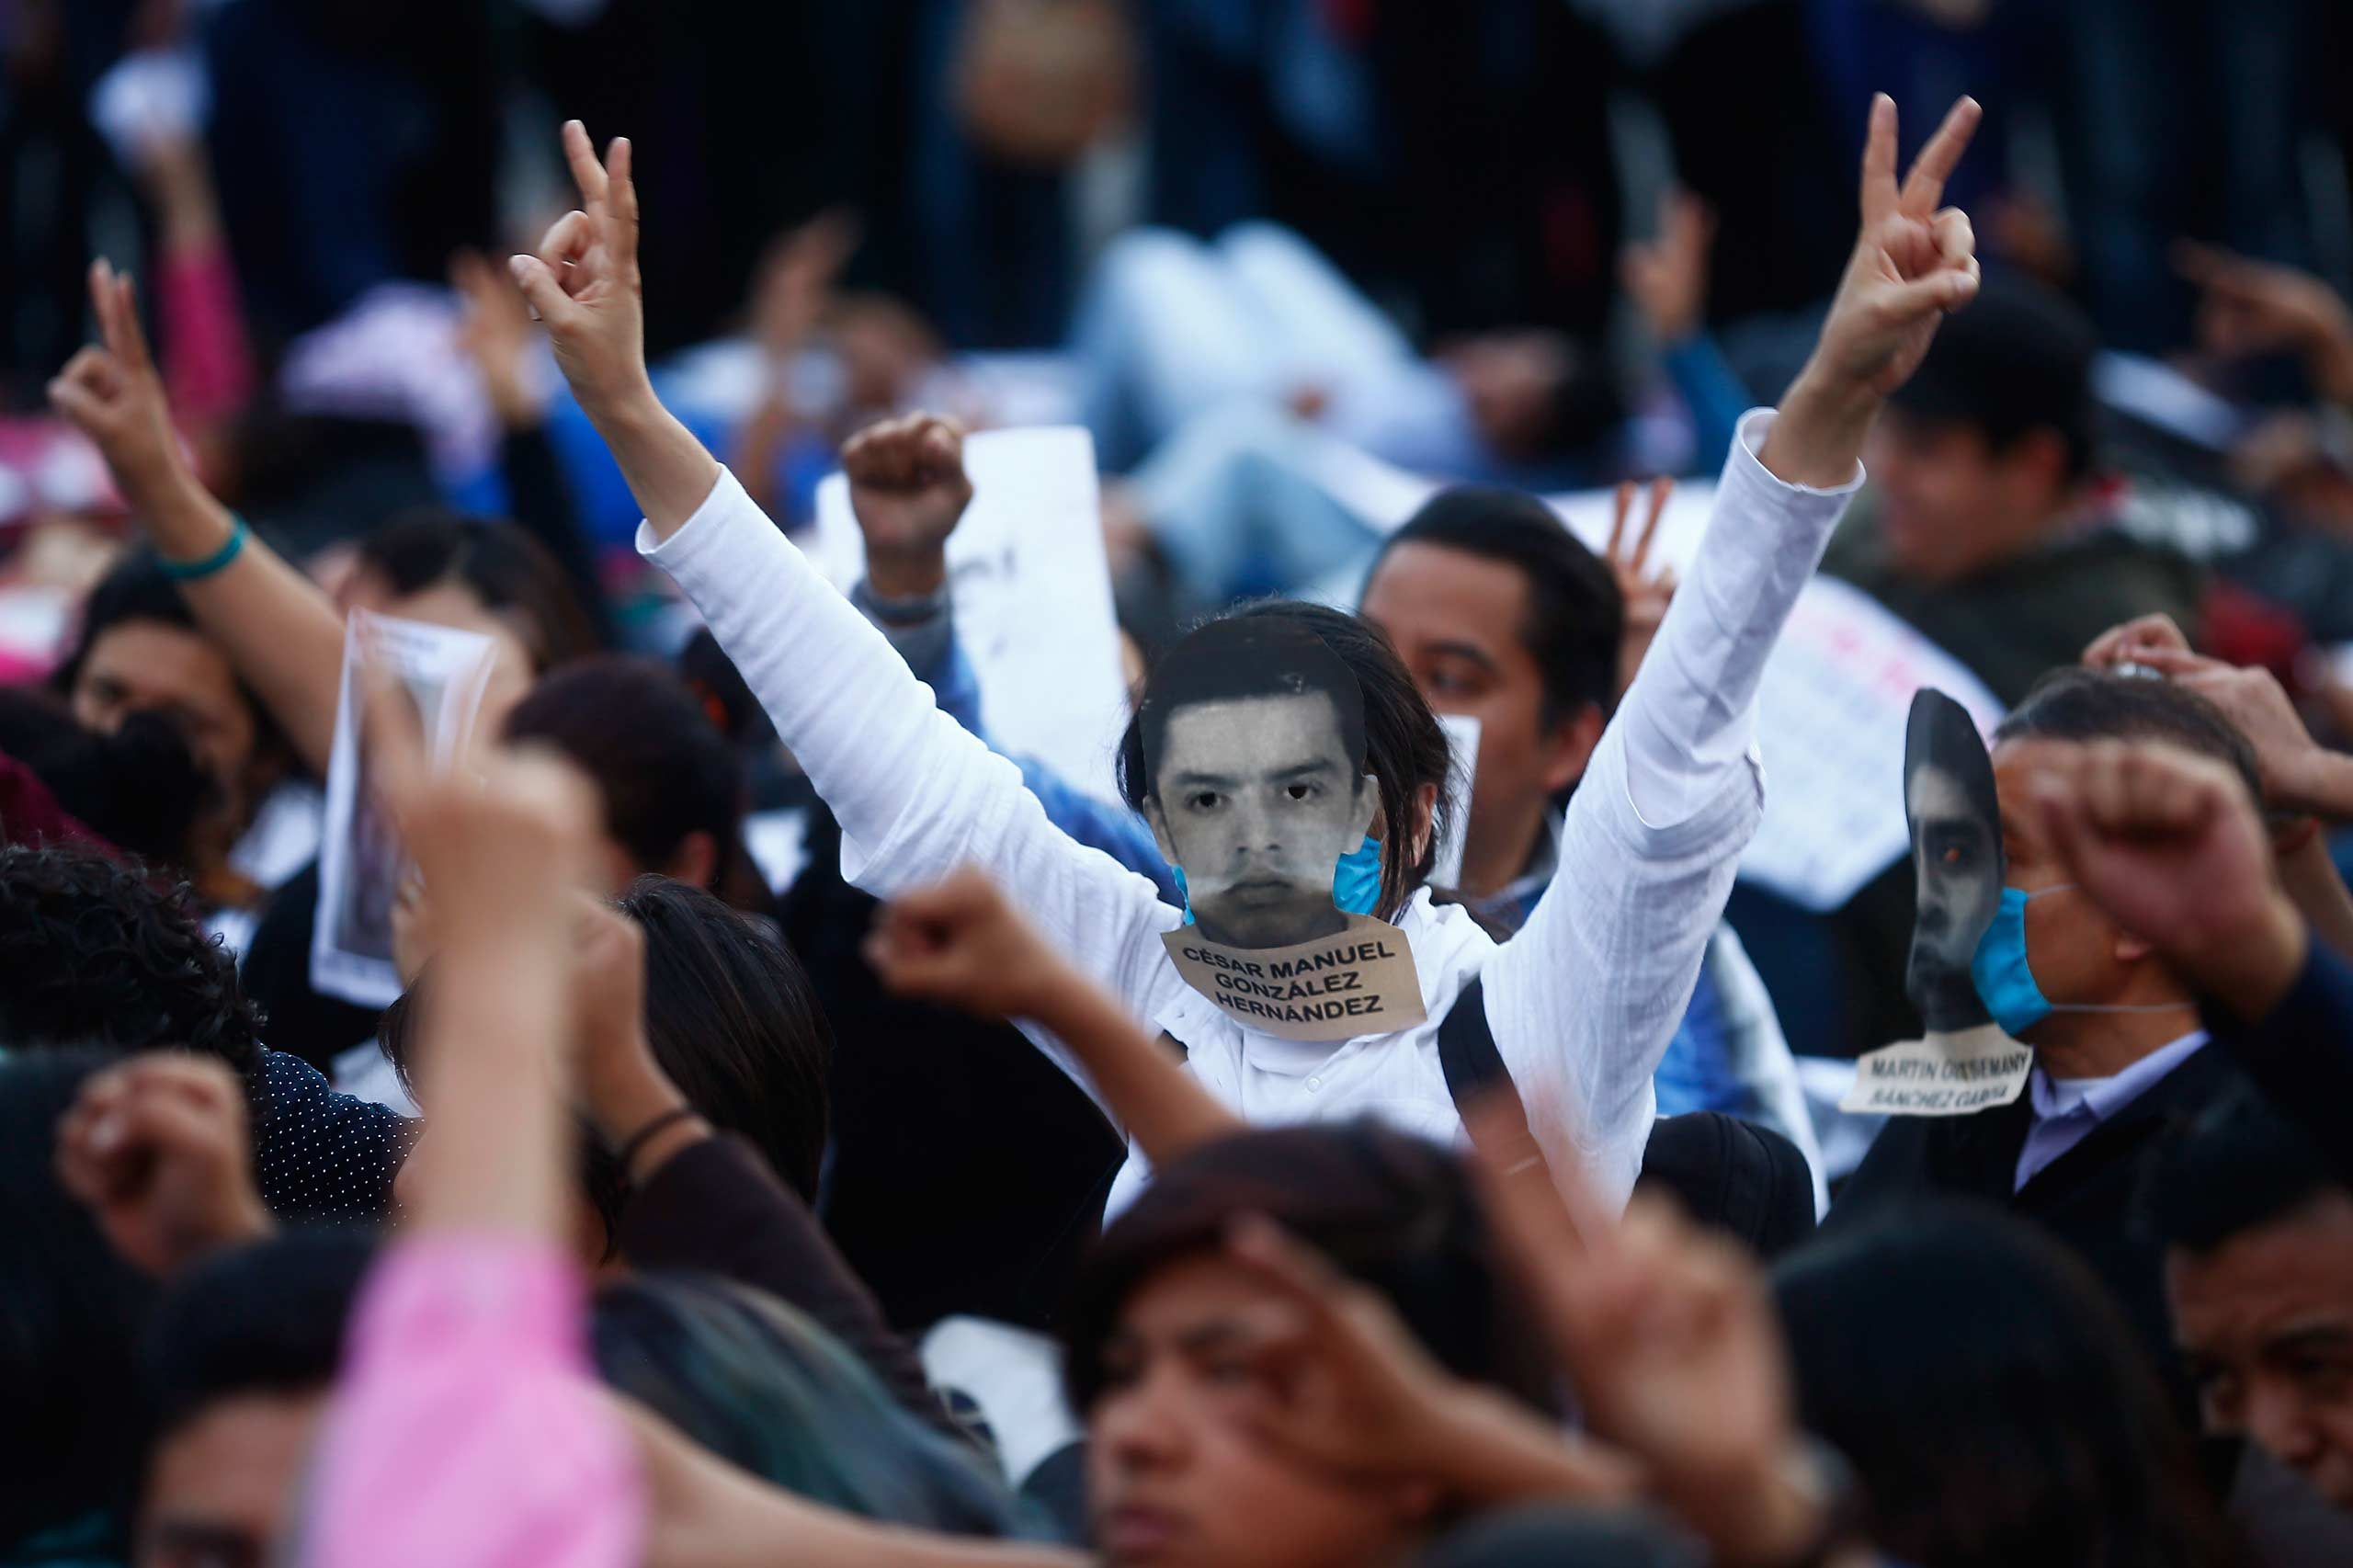 A demonstrator protests at Zocalo square in Mexico City November 8, 2014.